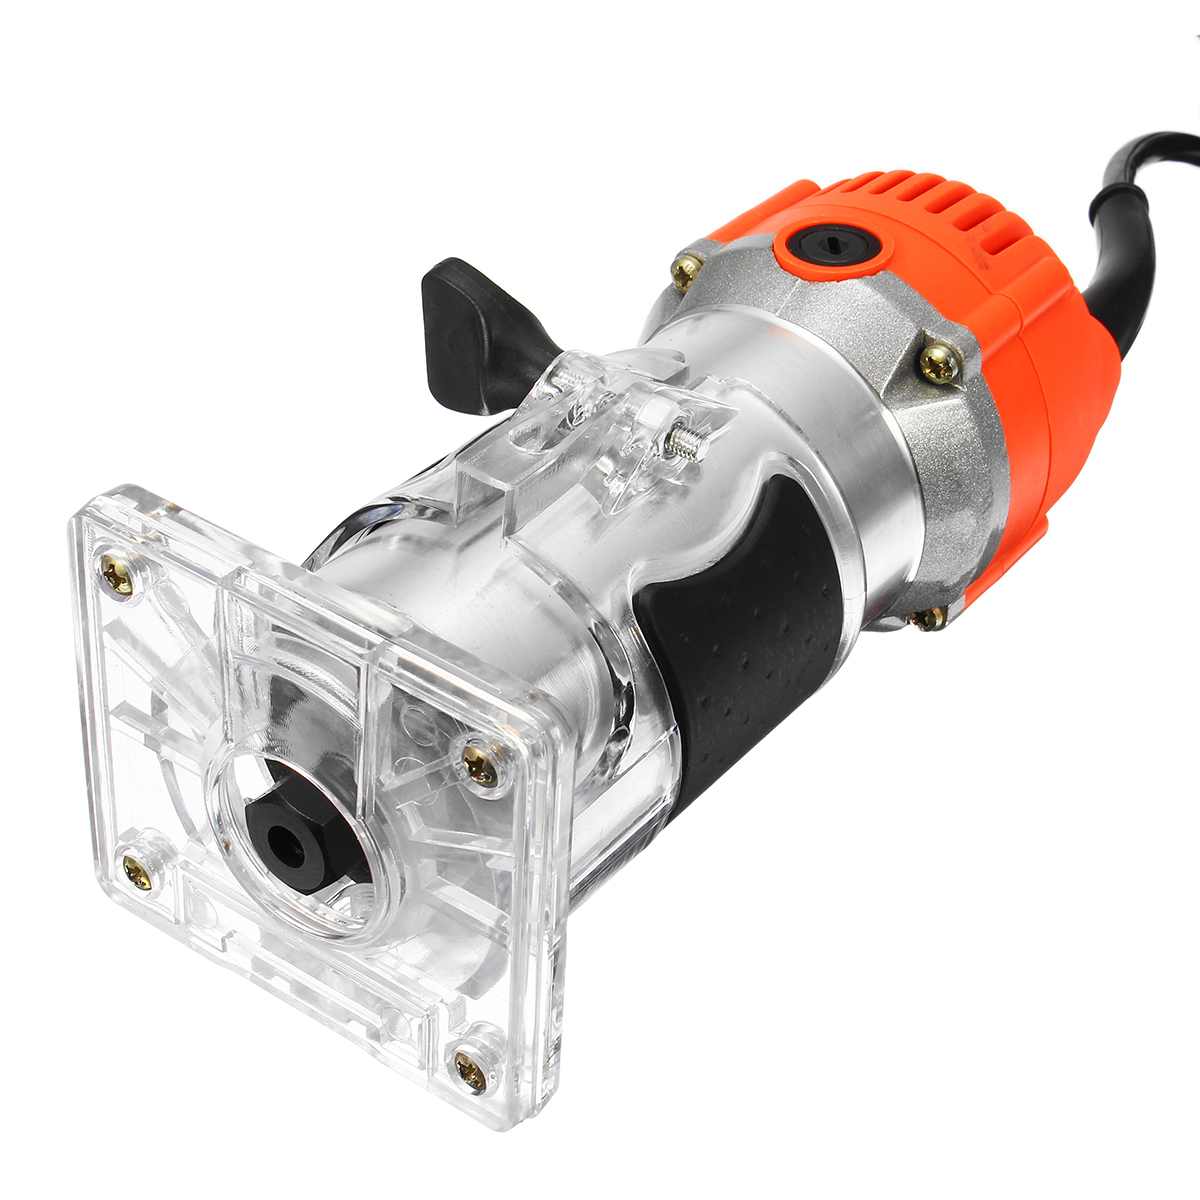 220V 800w 1/4 Inch Corded Electric Hand Trimmer Wood La